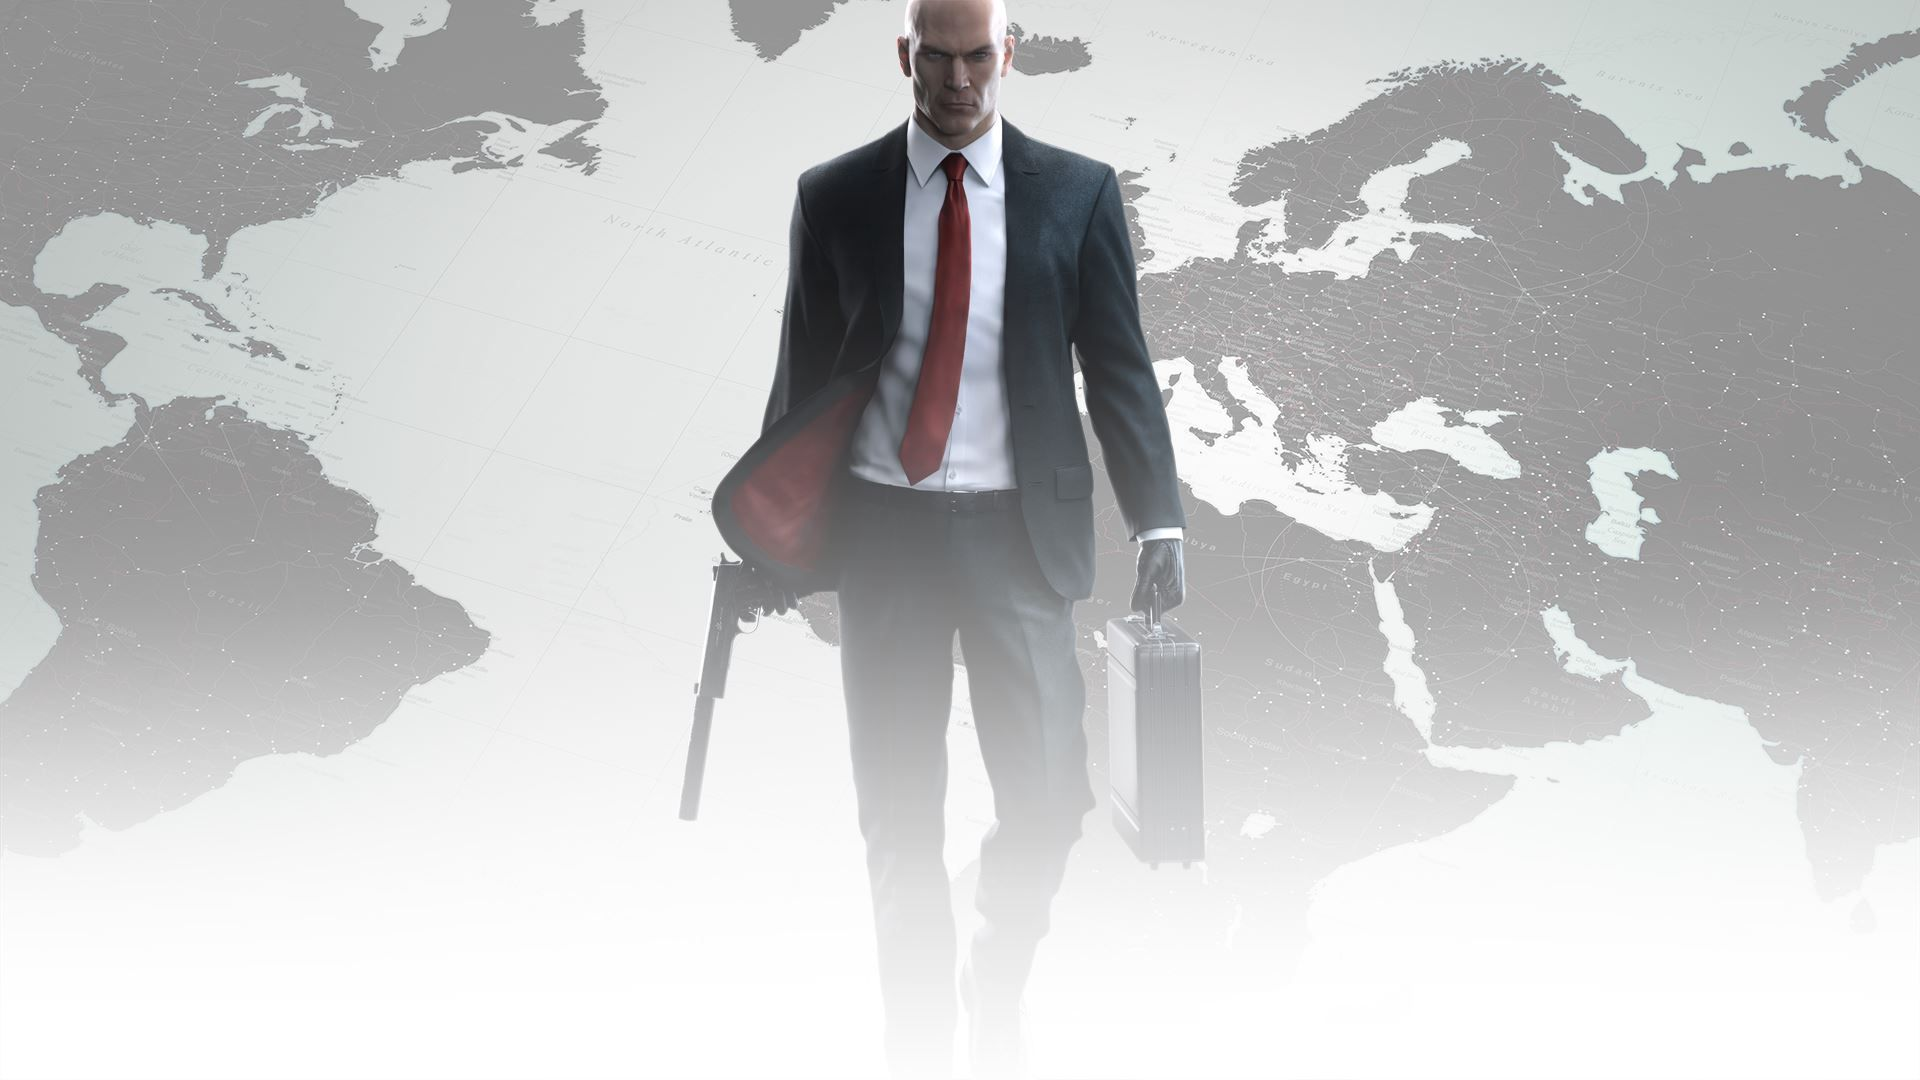 Hitman suit wallpapers top free hitman suit backgrounds wallpaperaccess - Agent 47 wallpaper ...